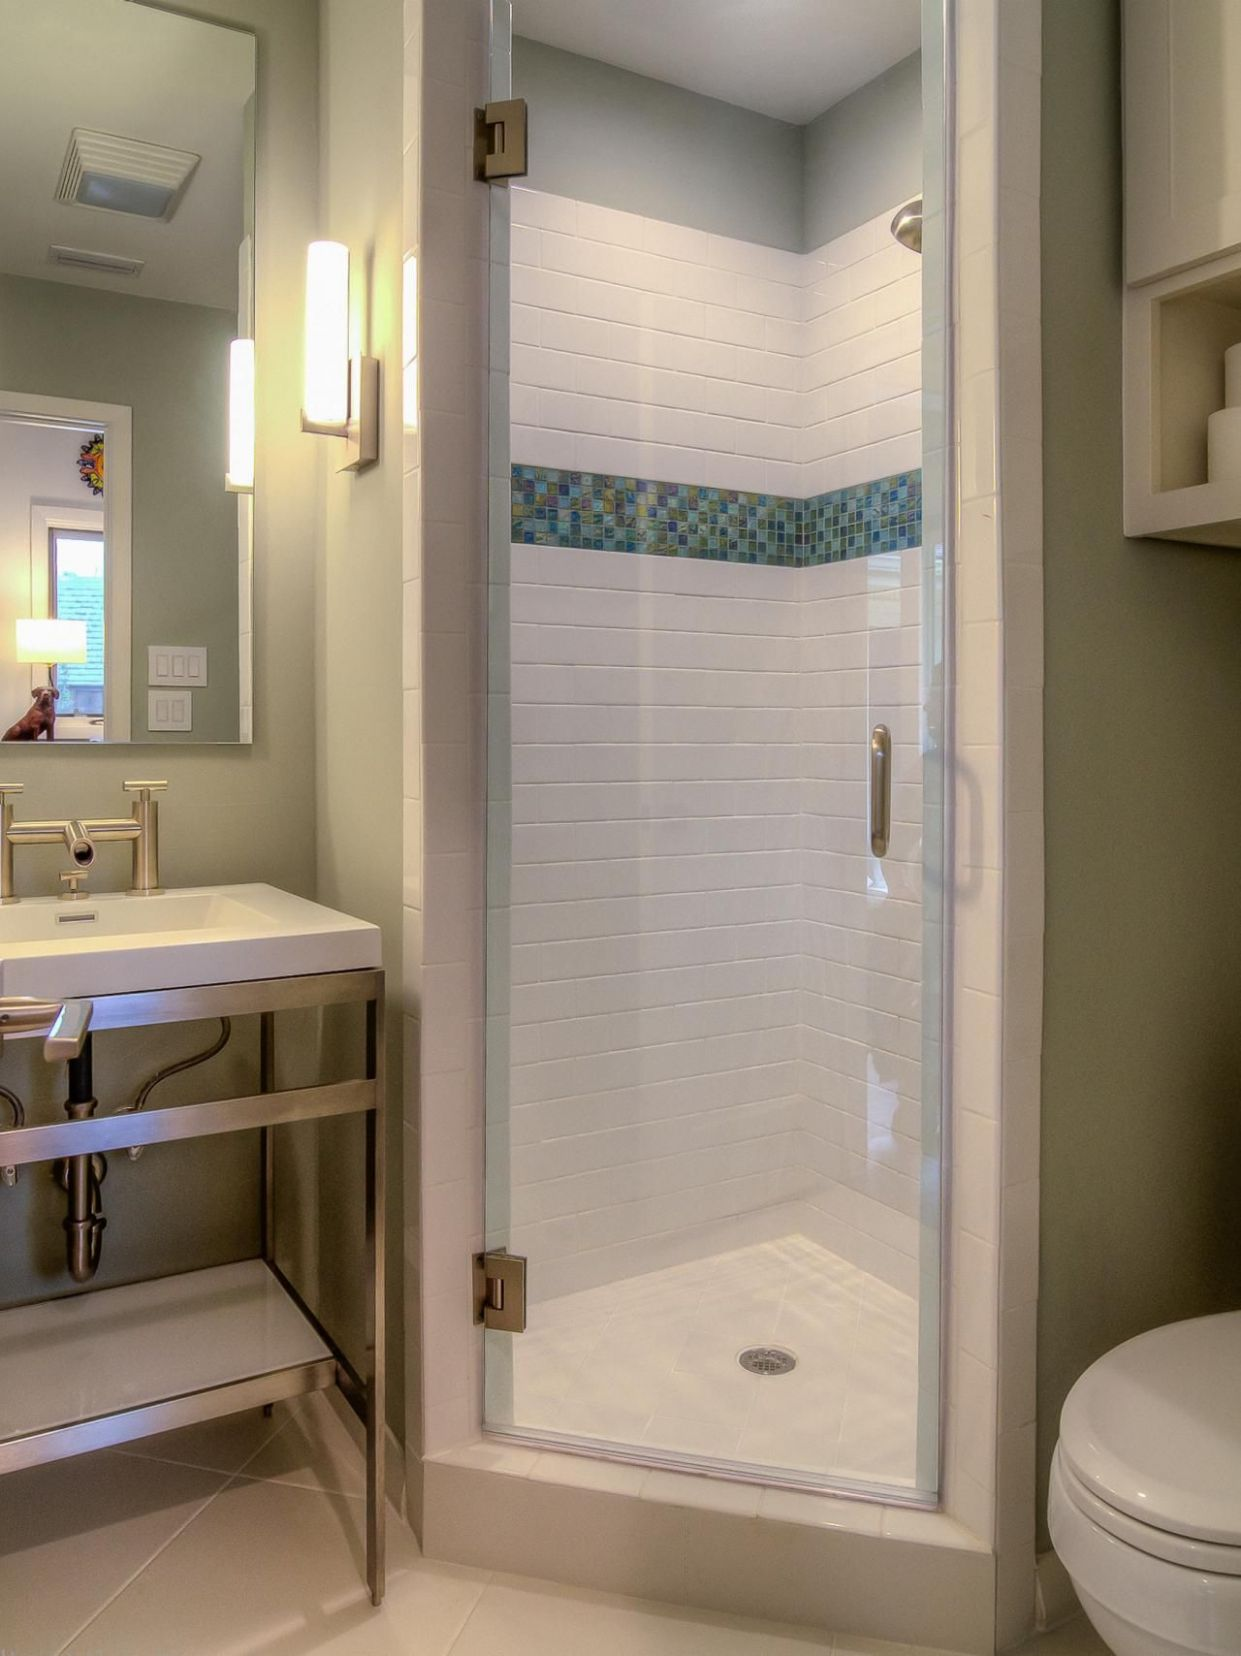 A stall shower fits perfectly in the corner of this small bathroom ..